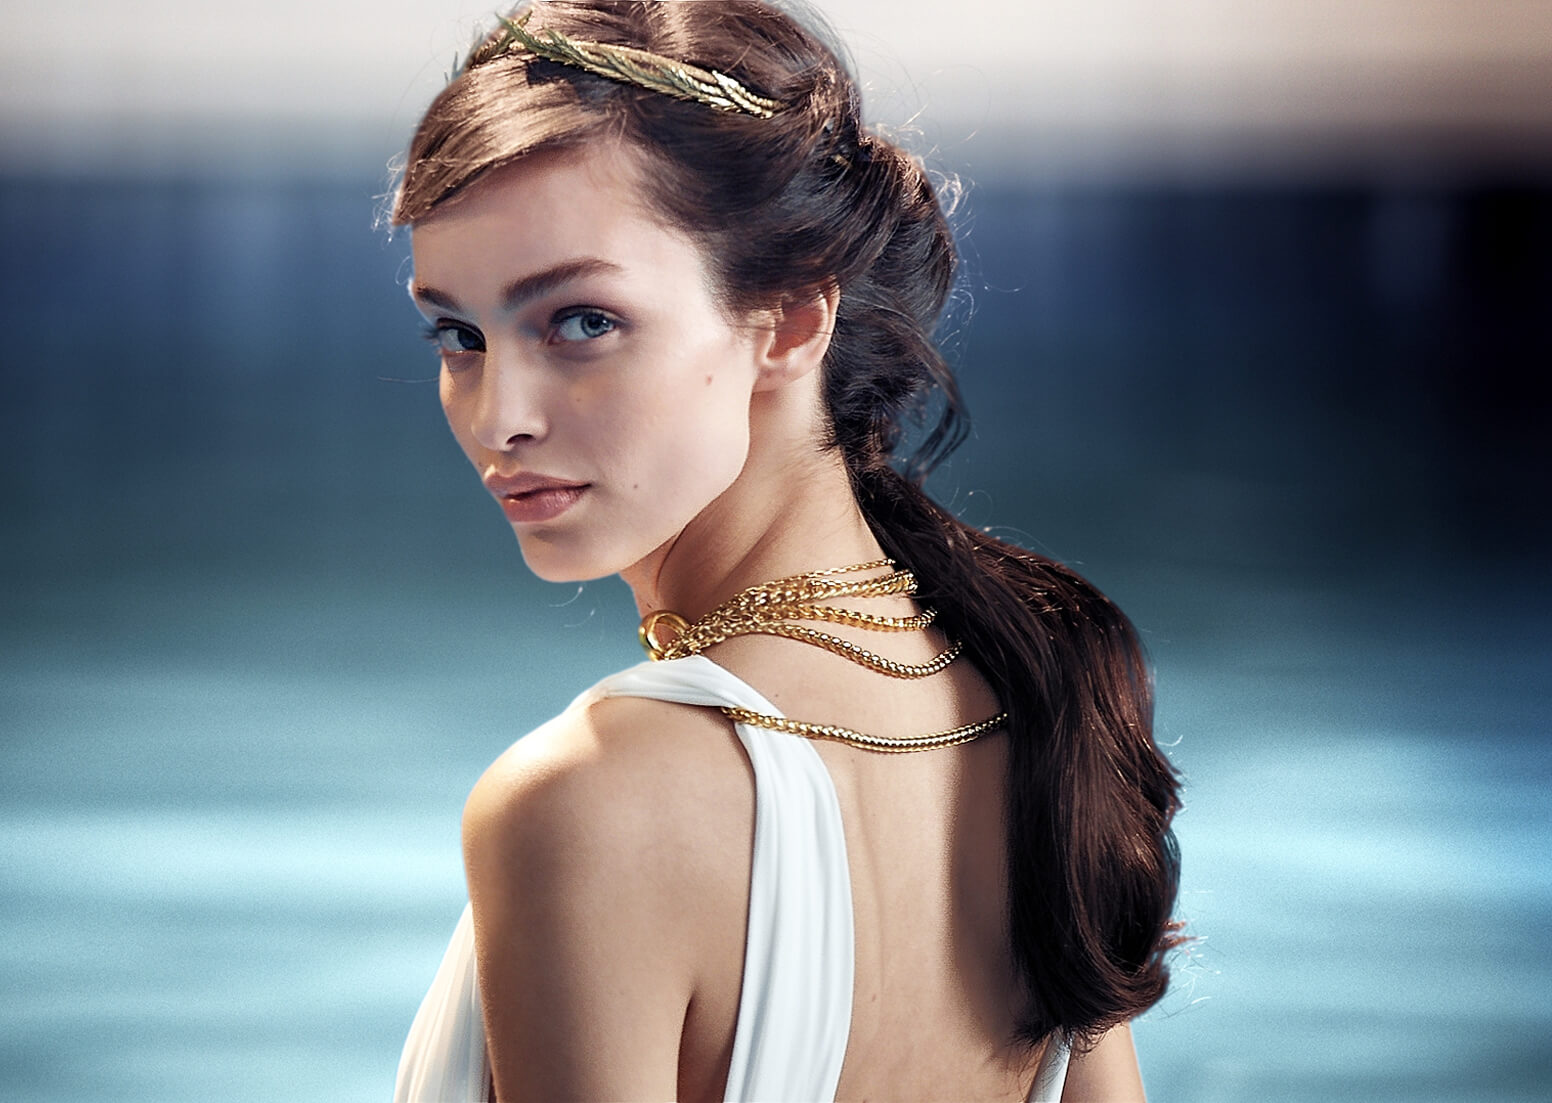 luma grothe hairstyle wallpaper 59921